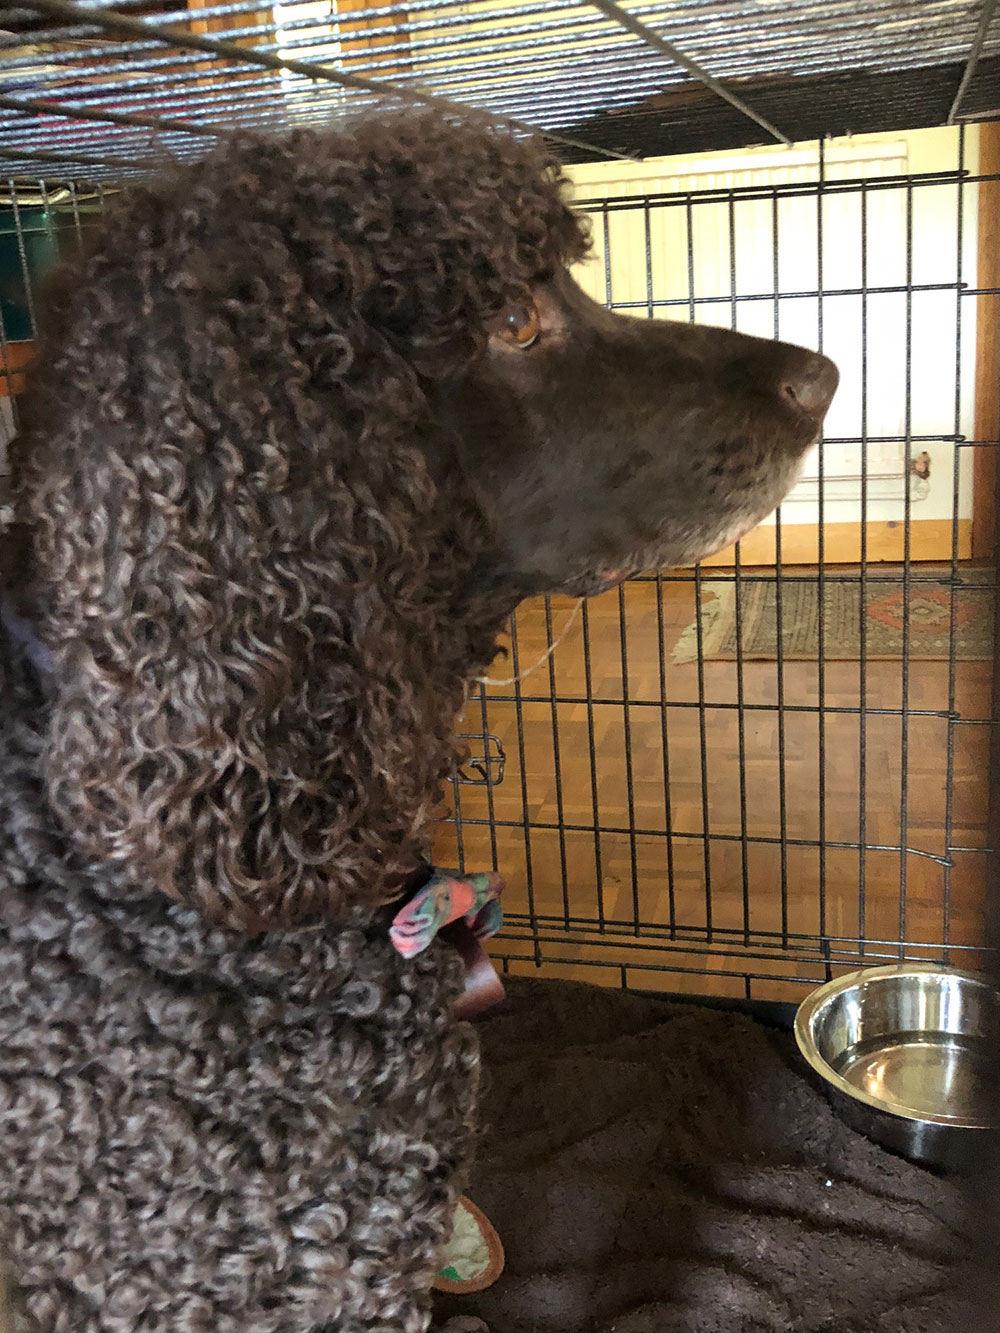 Murphy spent the night at courier M's home before his trip north. What a curly-haired chap he is!